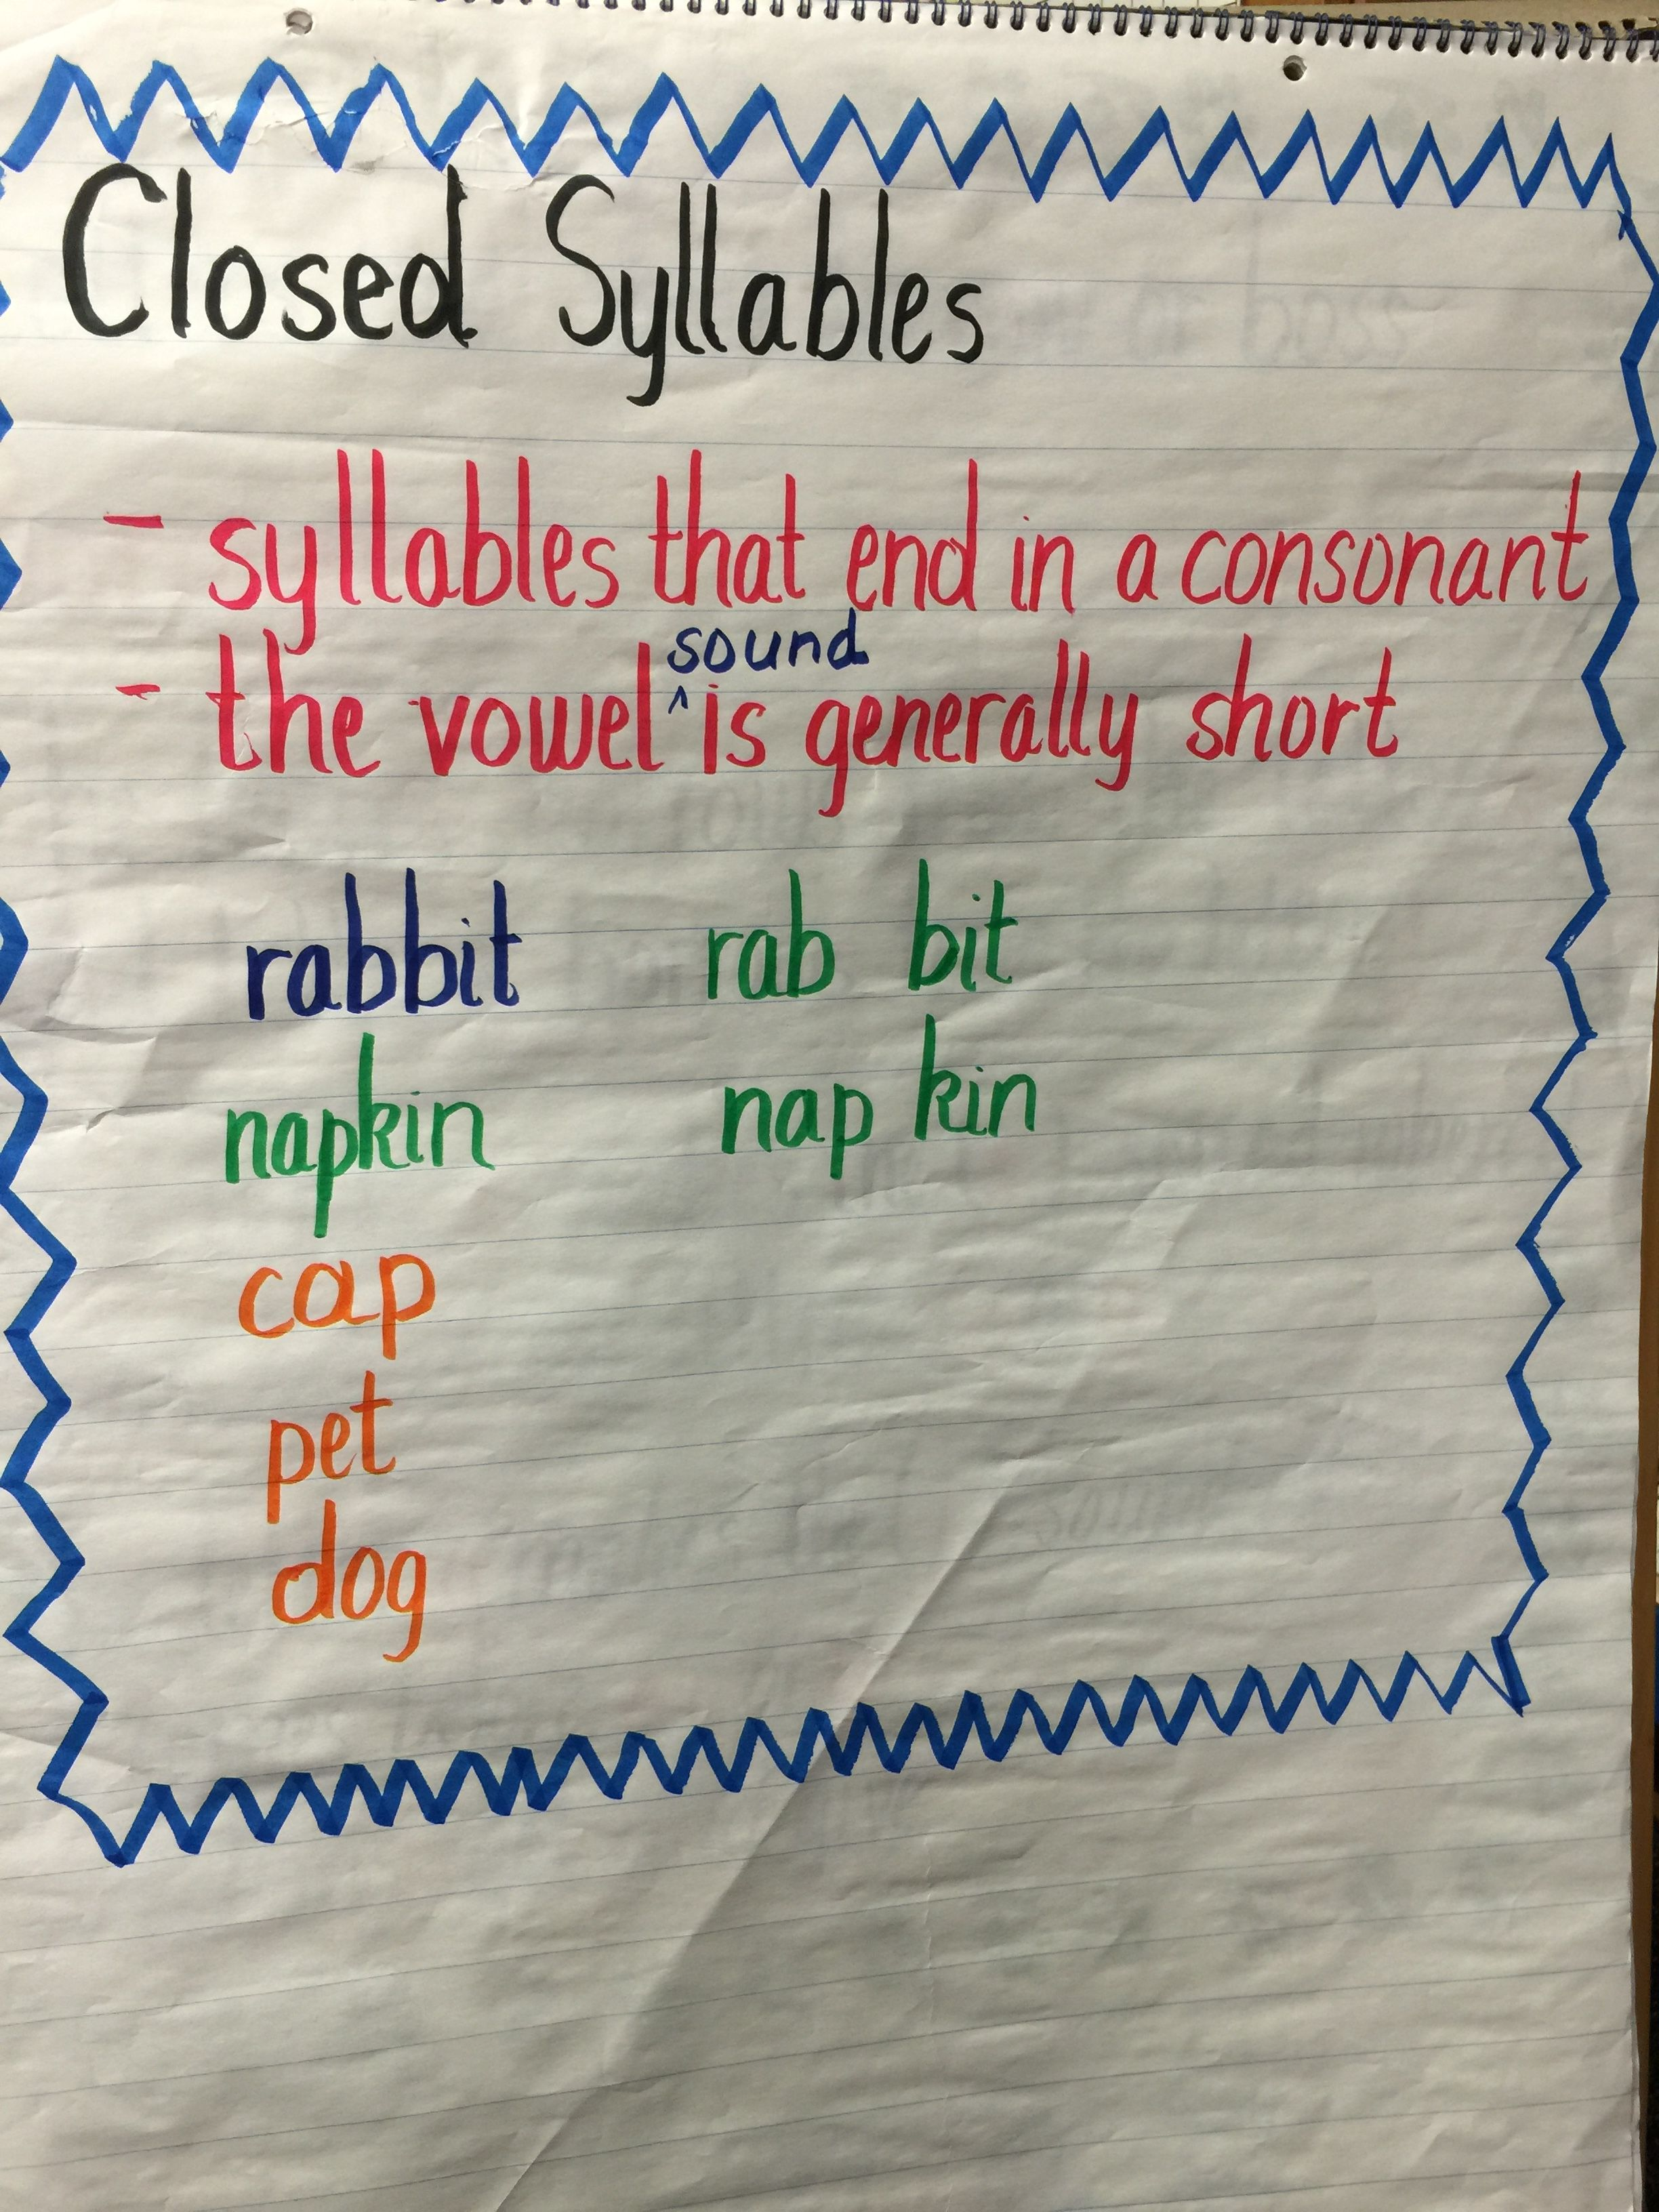 What Is A Closed Syllable